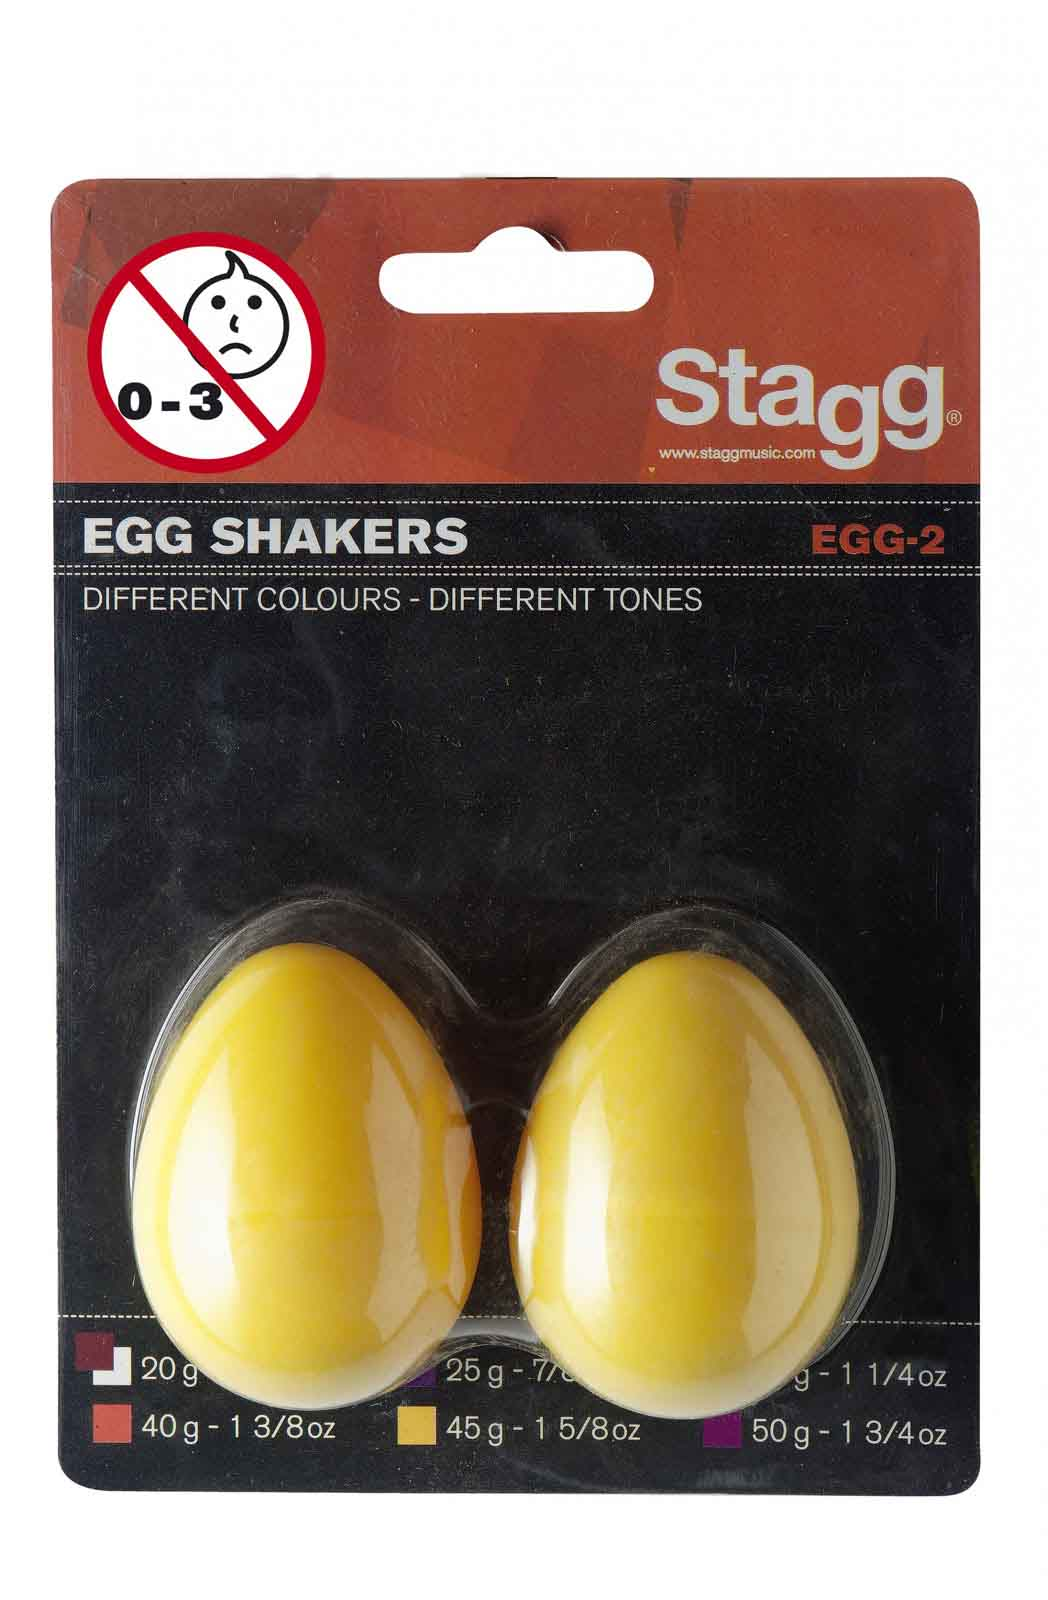 Stagg Paire Shaker Oeuf Plastique Egg-2 Yw